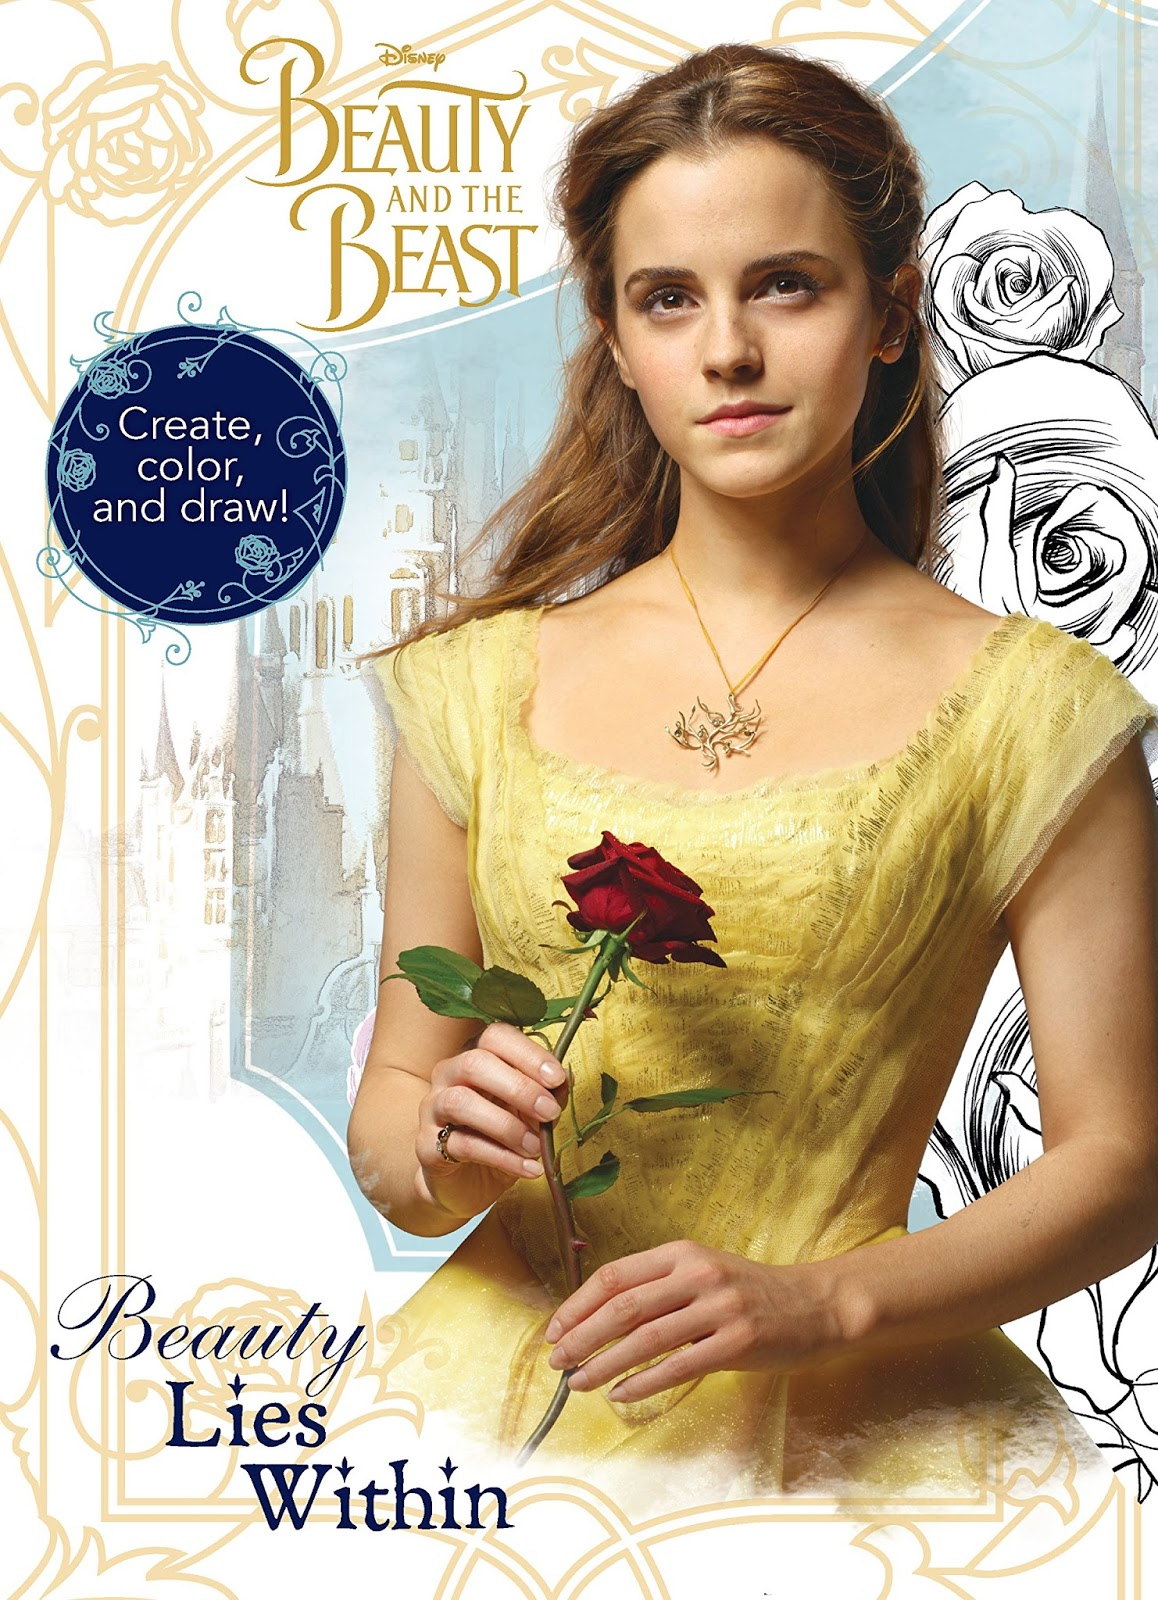 Beauty and the Beast Movie News Live action Beauty and the Beast